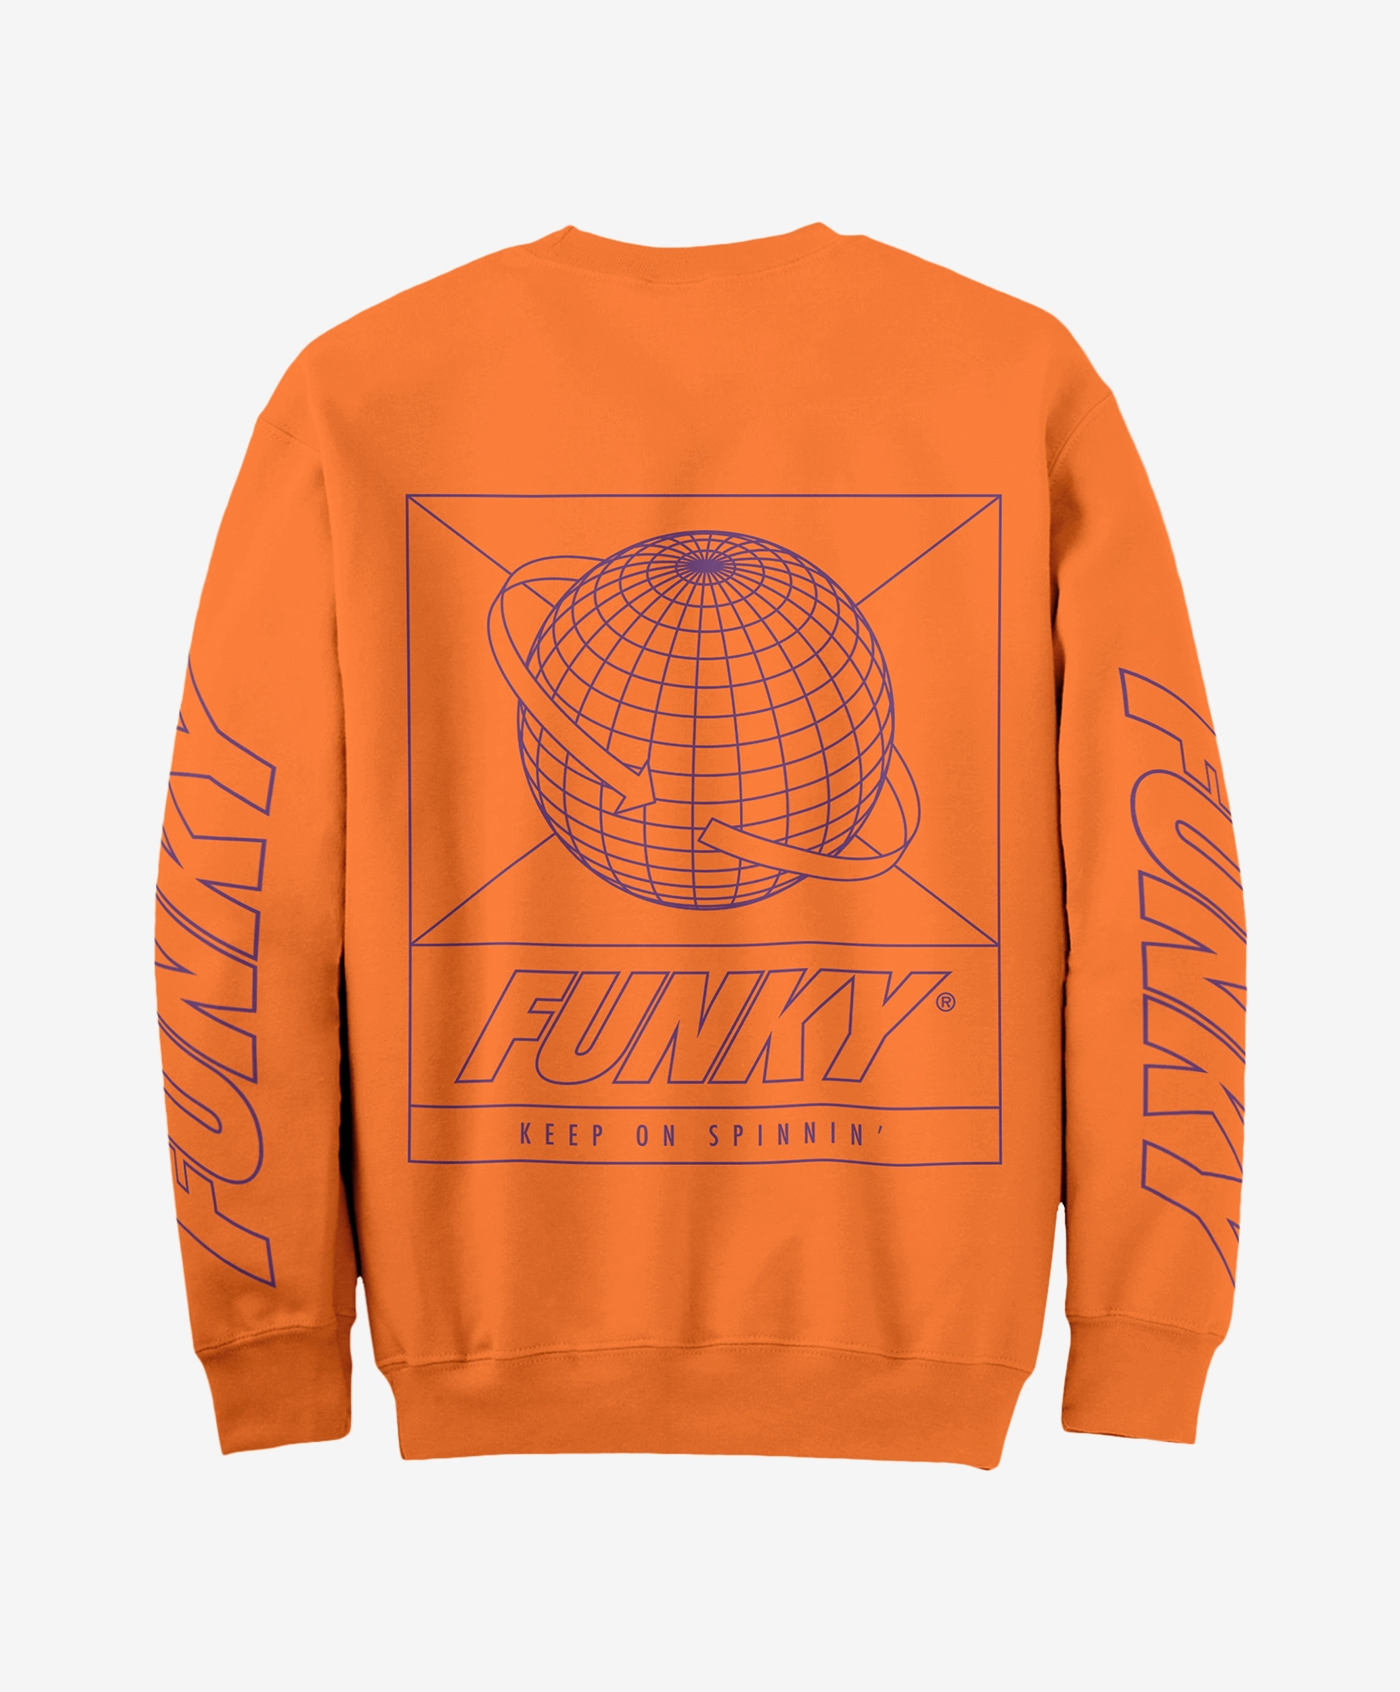 RADICAL-CREWNECK-BACK-ORANGE